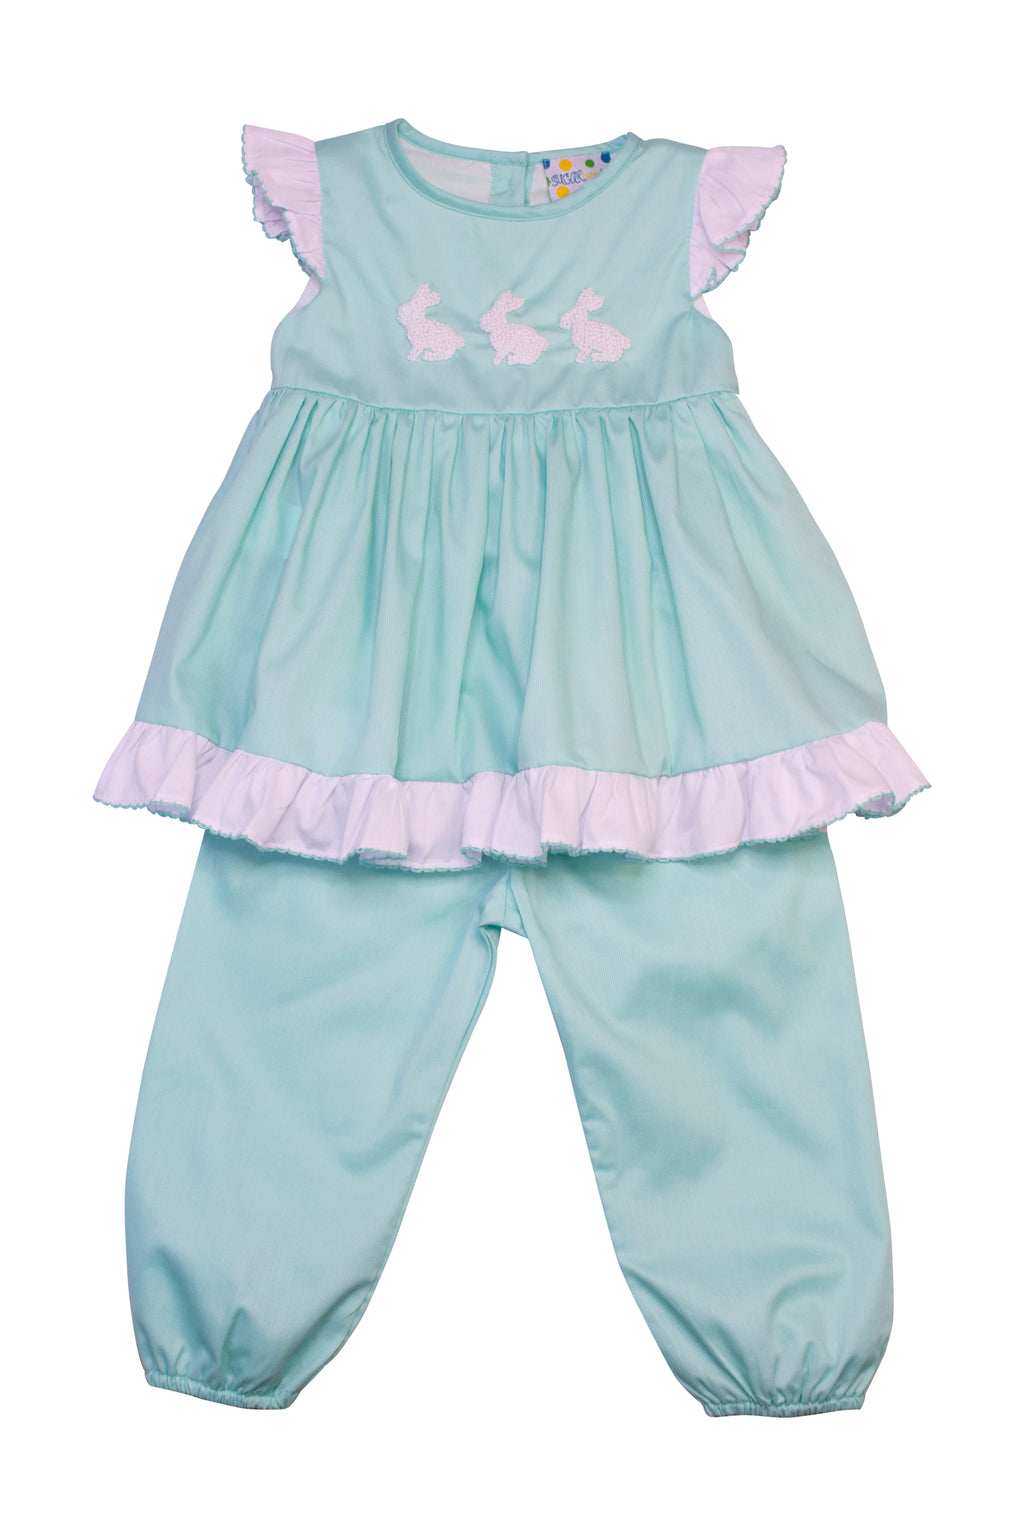 Girls Mint French Knot Bunny Pantaloon Set